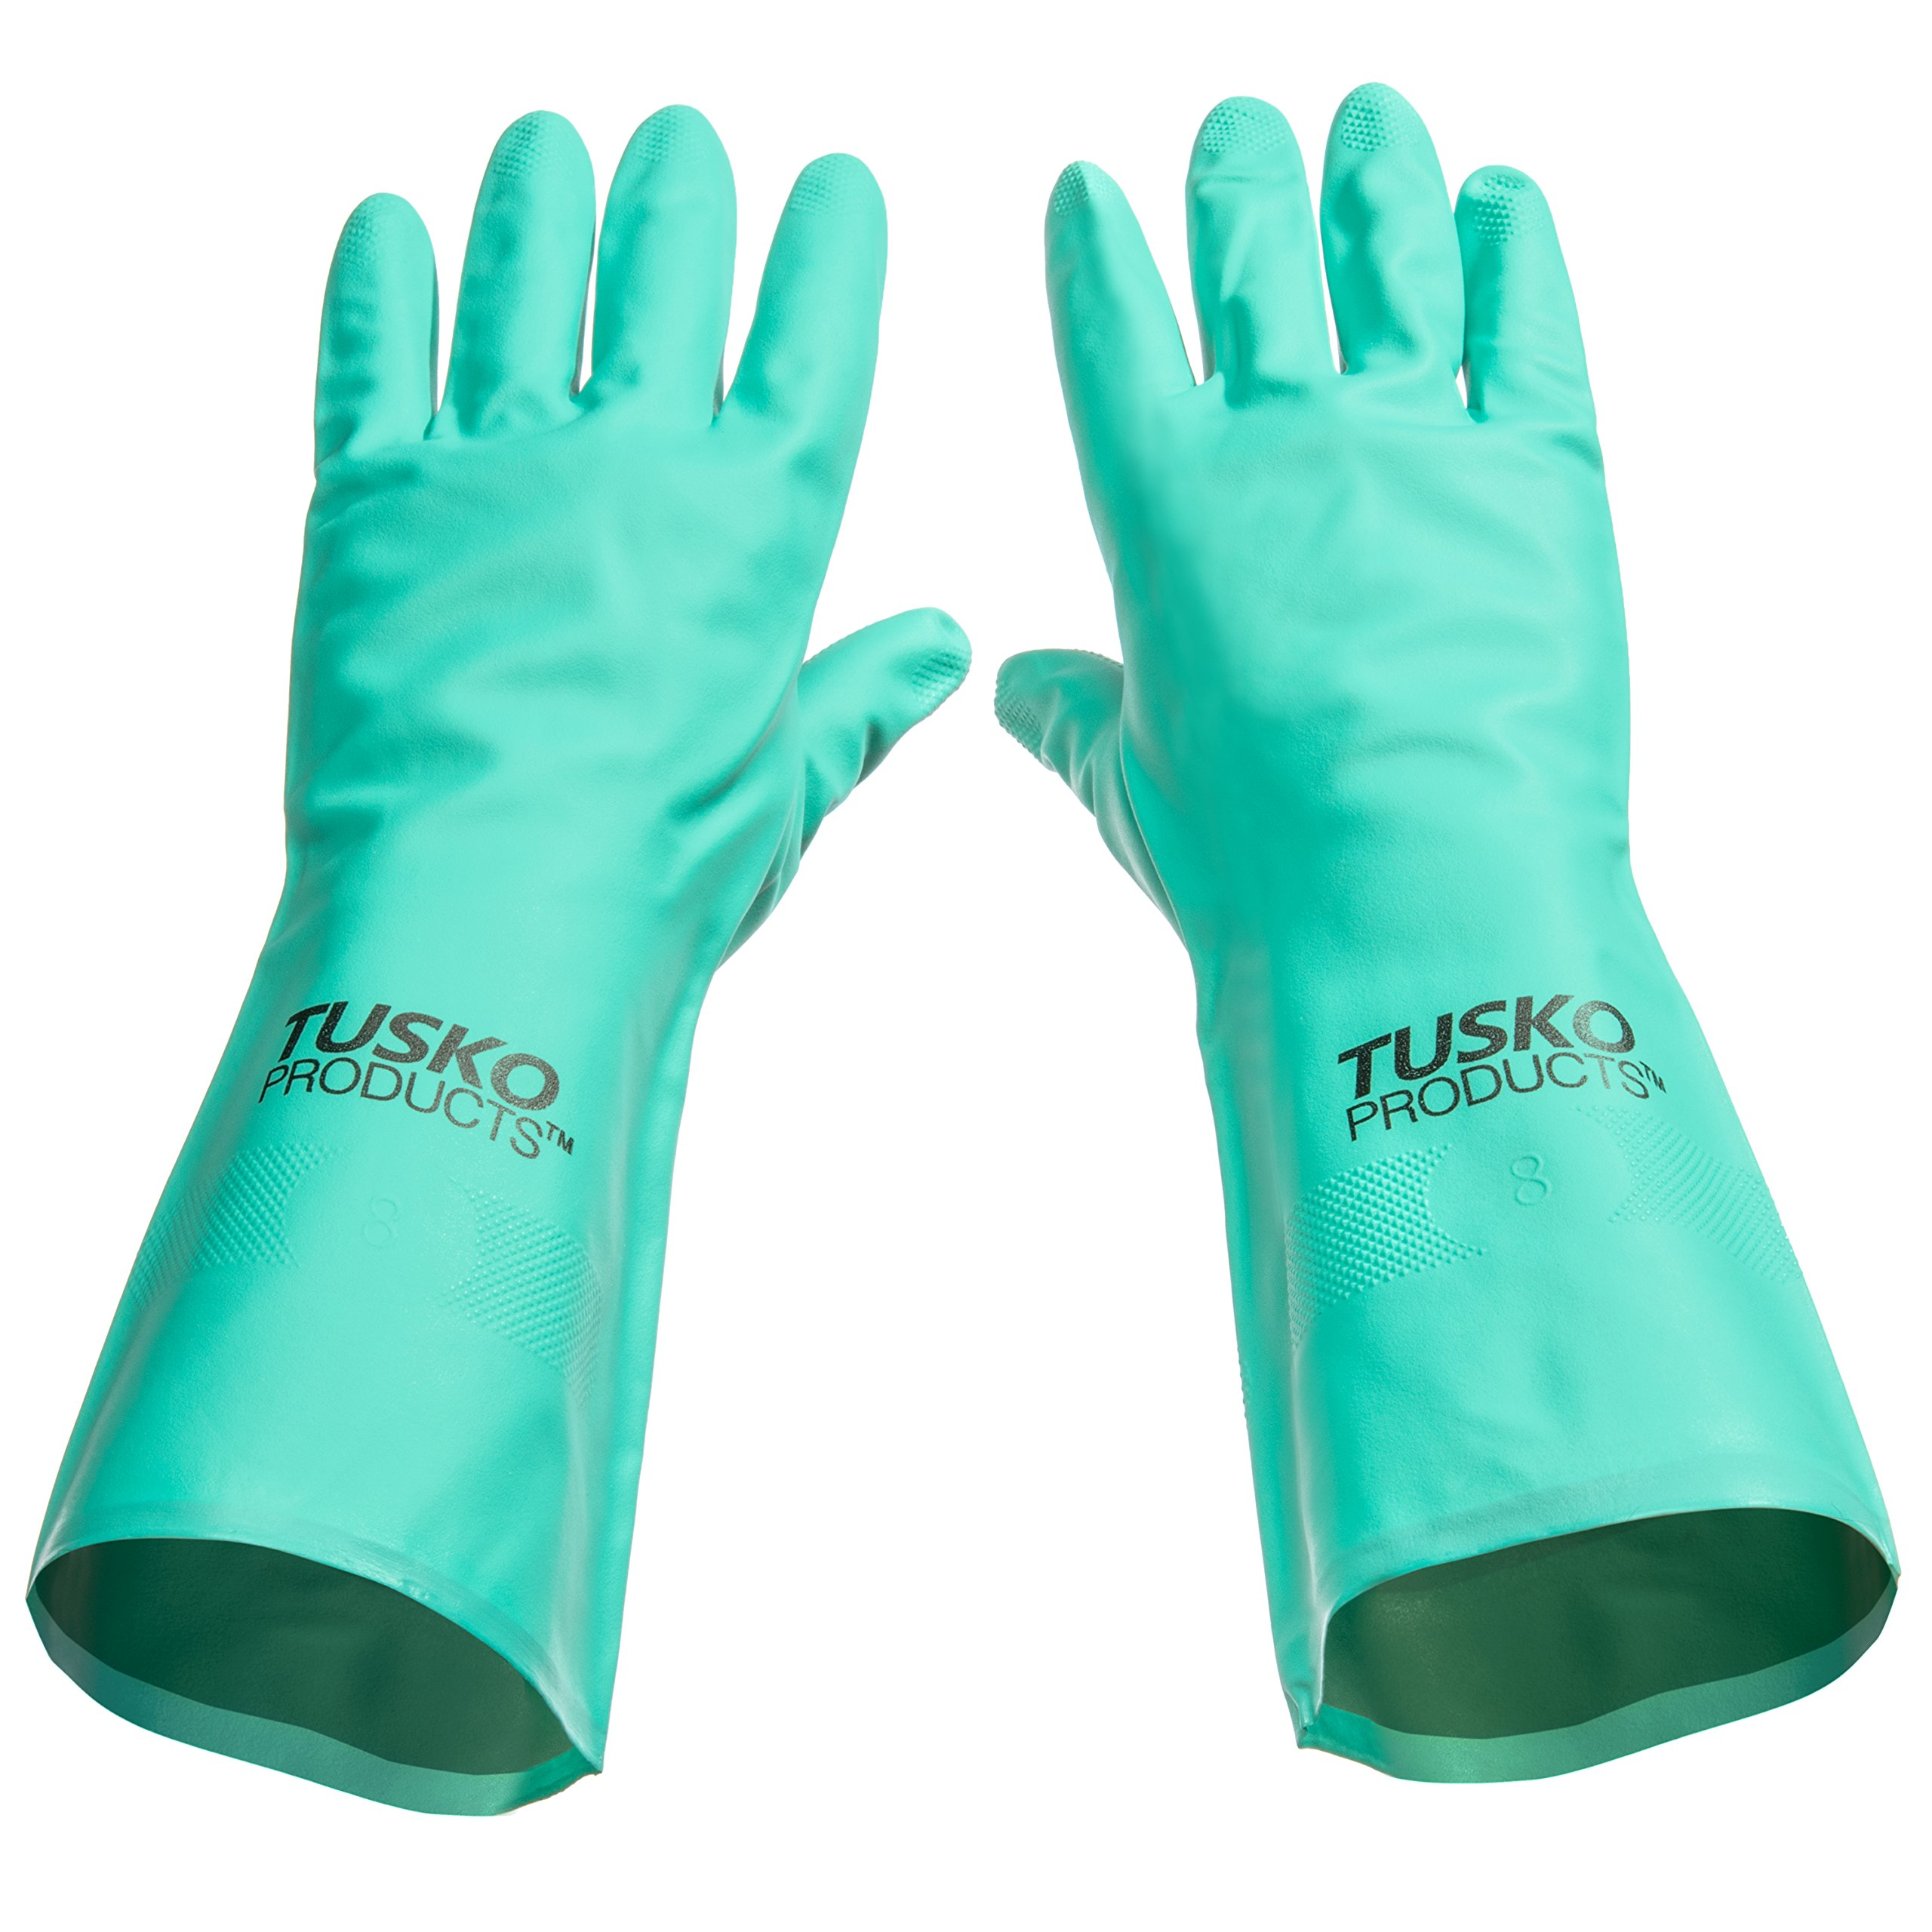 Gloves Image